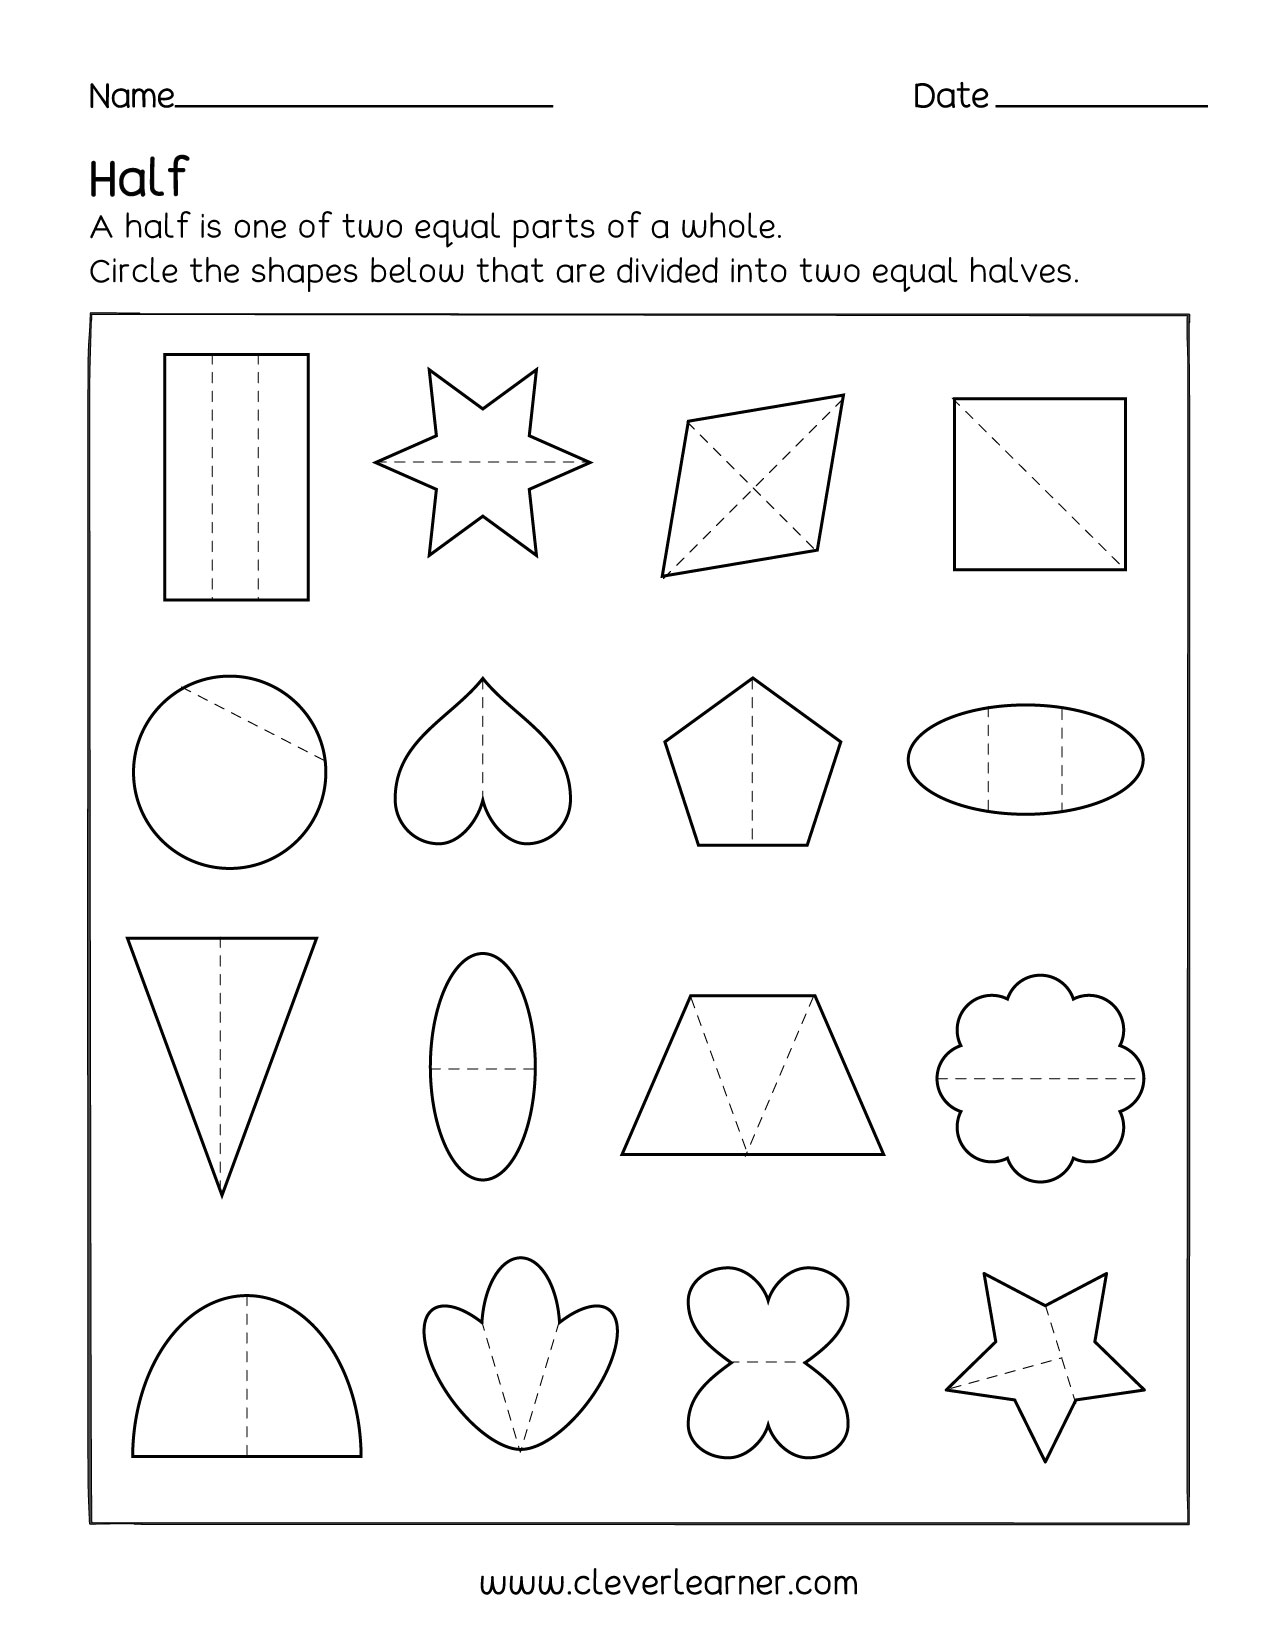 Printables Of Fraction Worksheets For Pre K